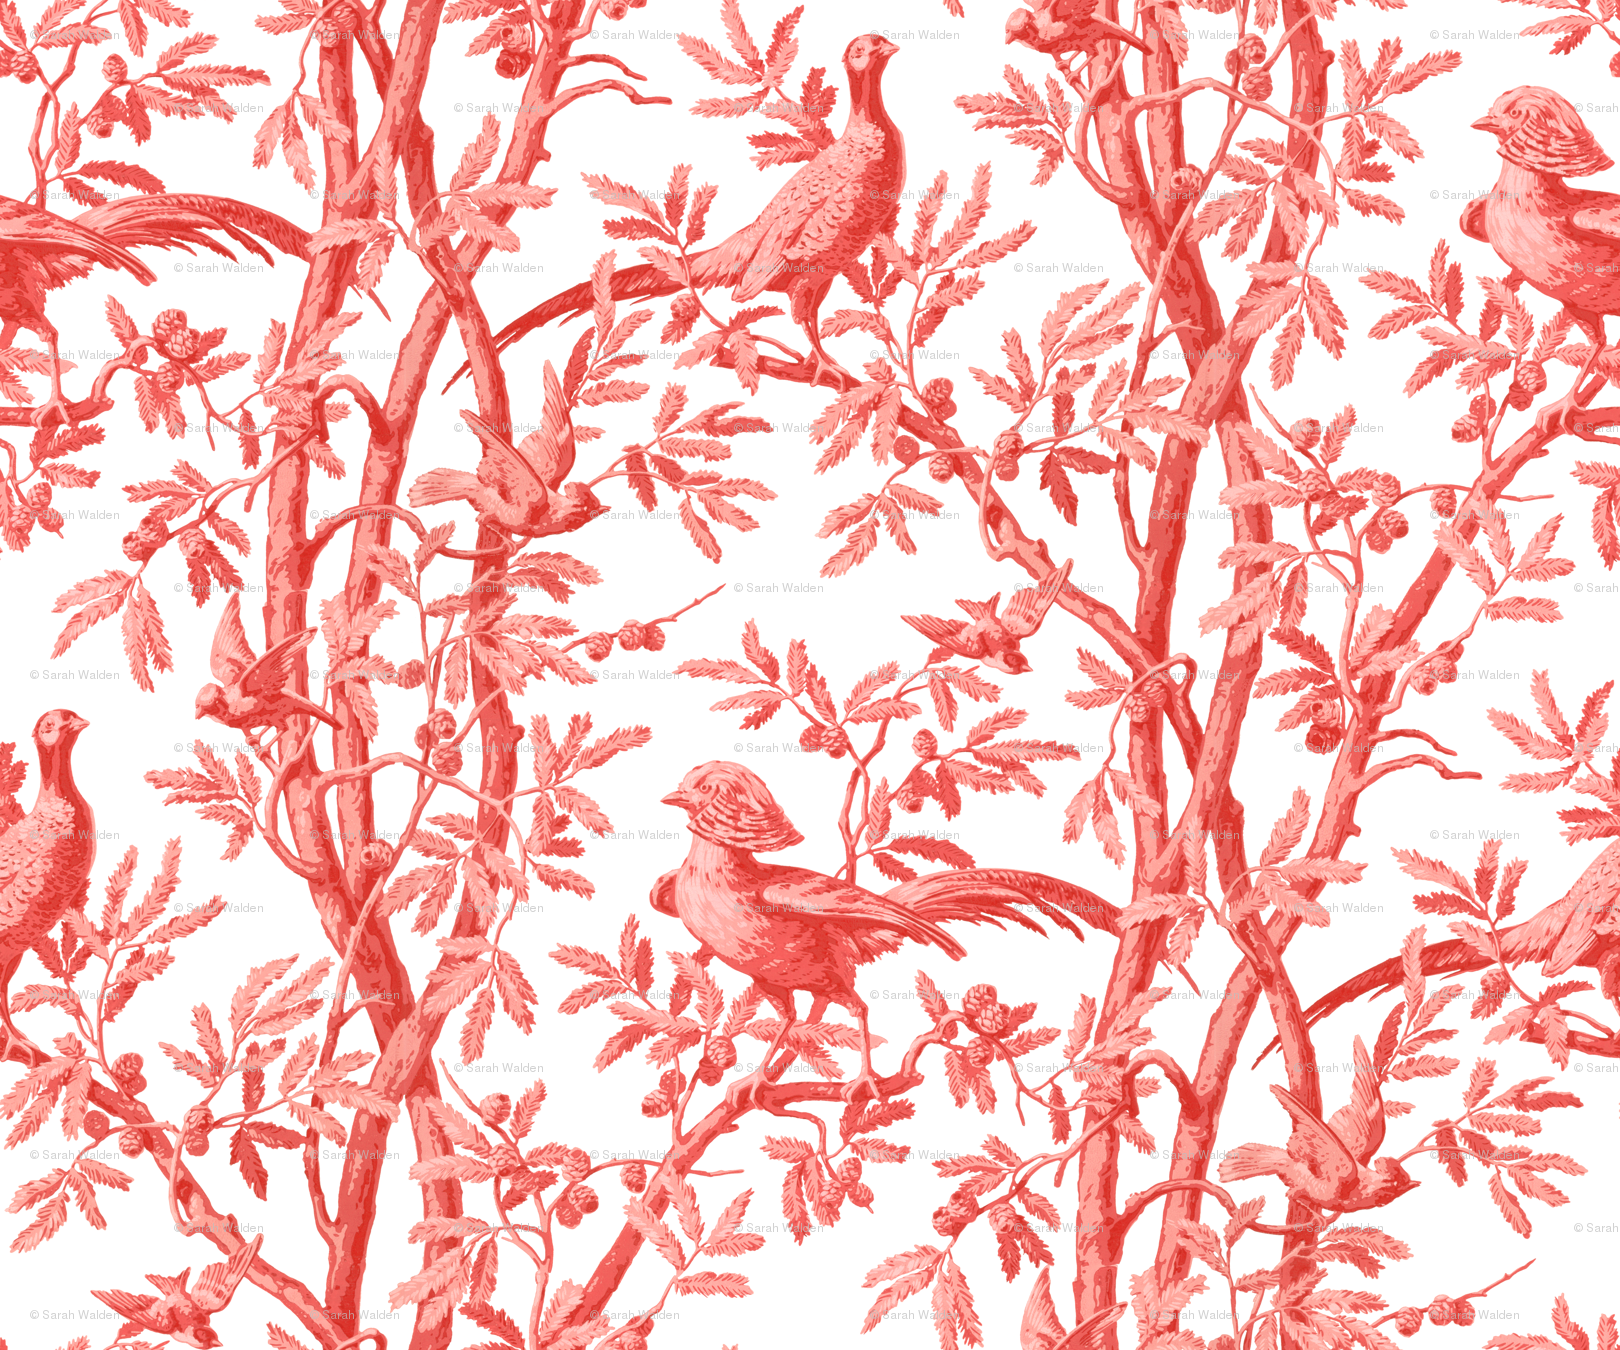 Golden Pheasants Chinoiserie Toile ~ Coral Reef on White wallpaper - peacoquettedesigns - Spoonflower